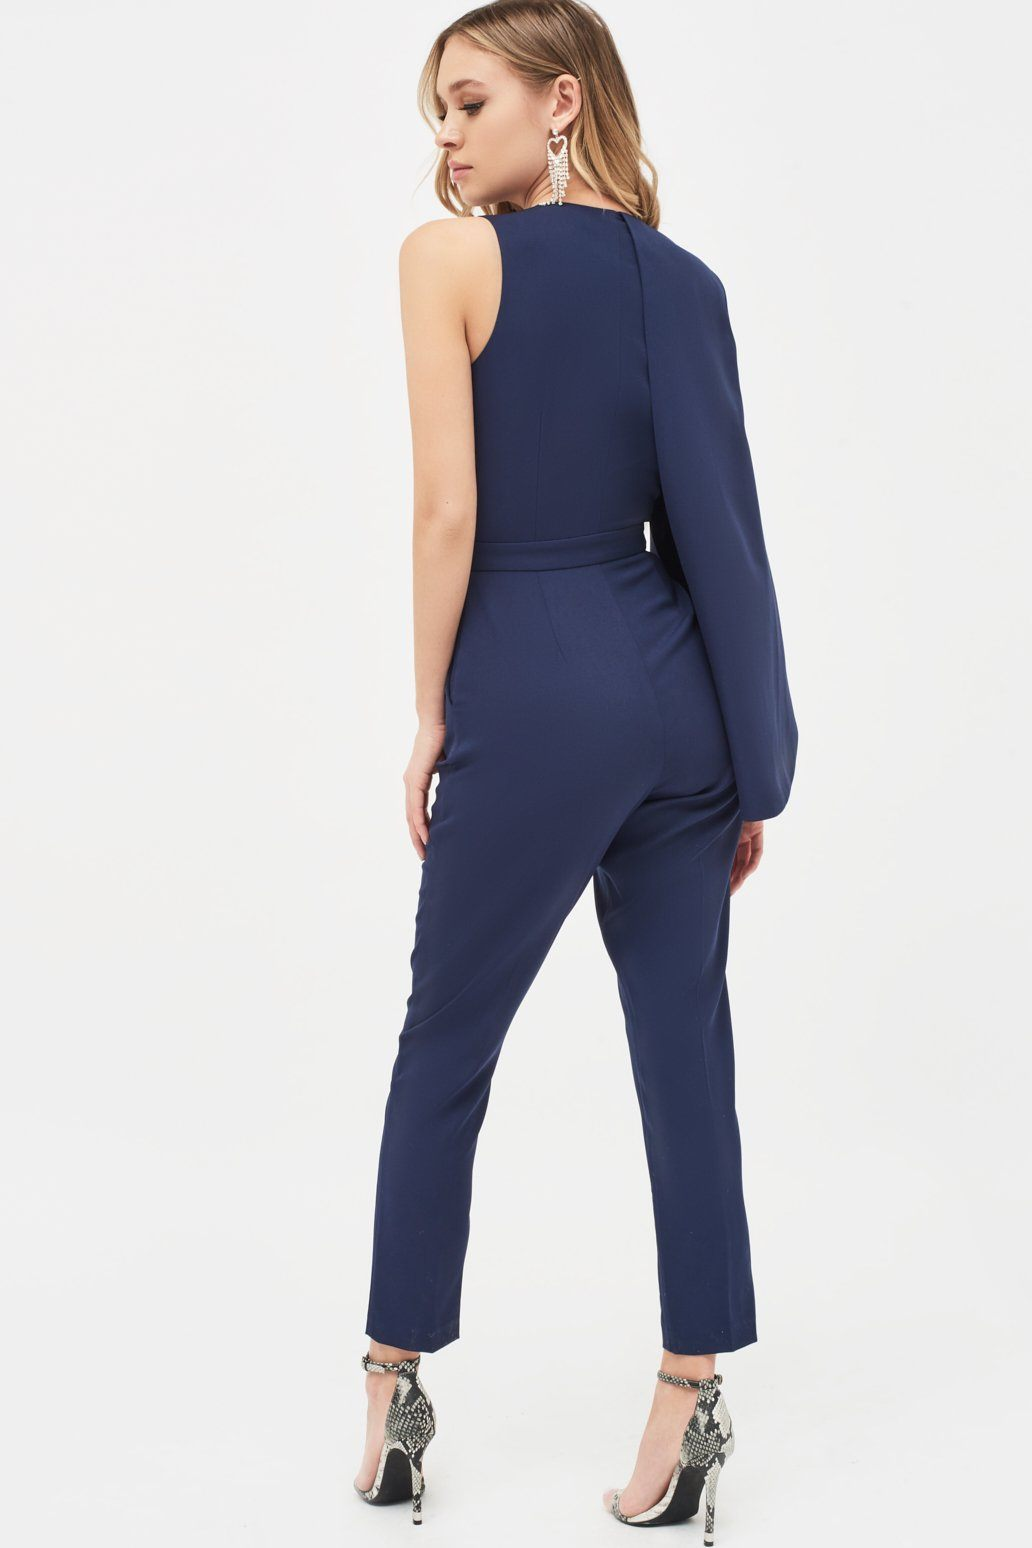 Half Cape V-Plunge Tapered Jumpsuit in Navy